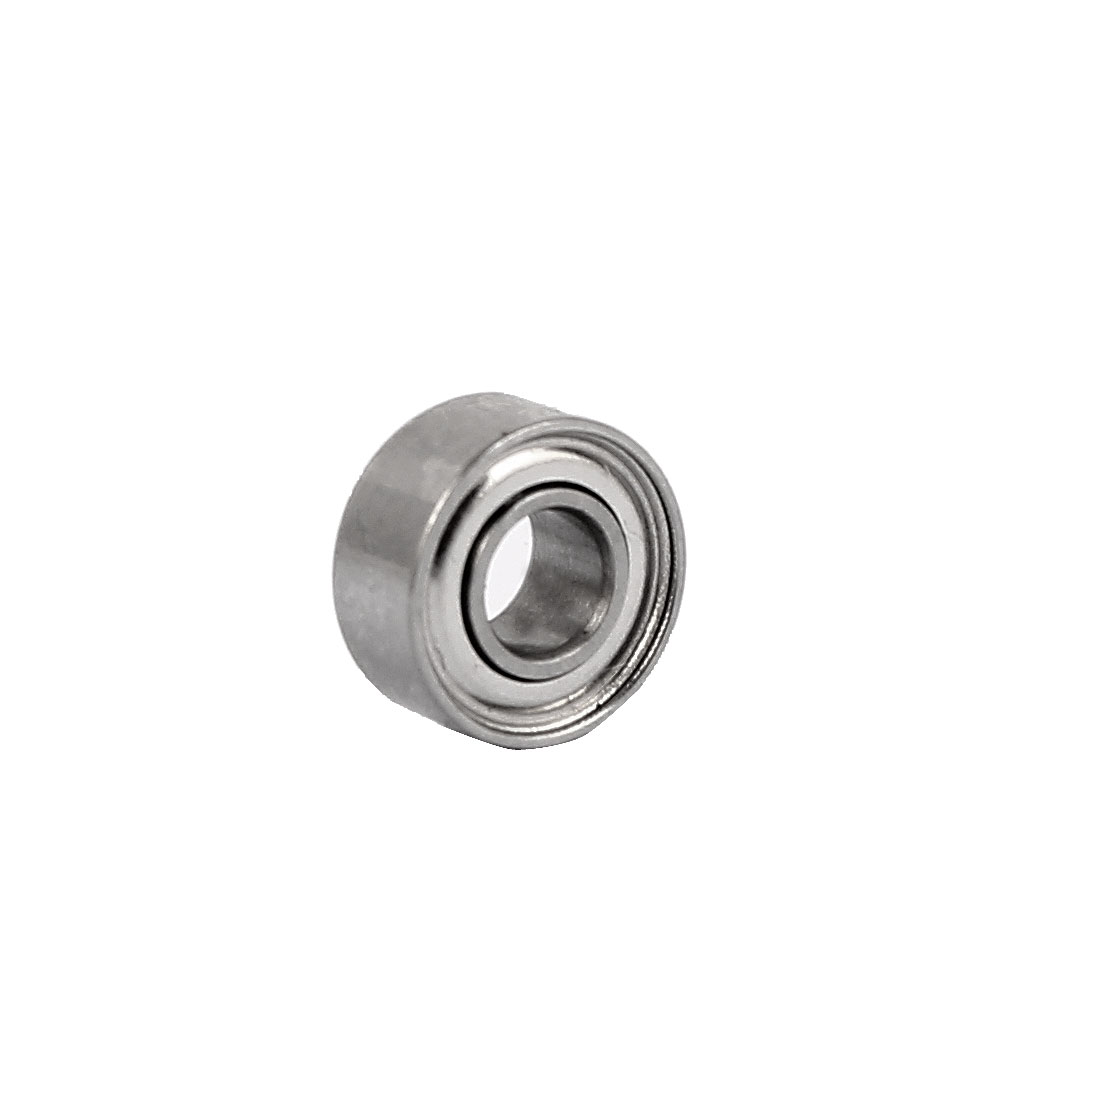 ZZ683 Dual Steel Shields Deep Groove Ball Bearing 7mmx3mmx3mm